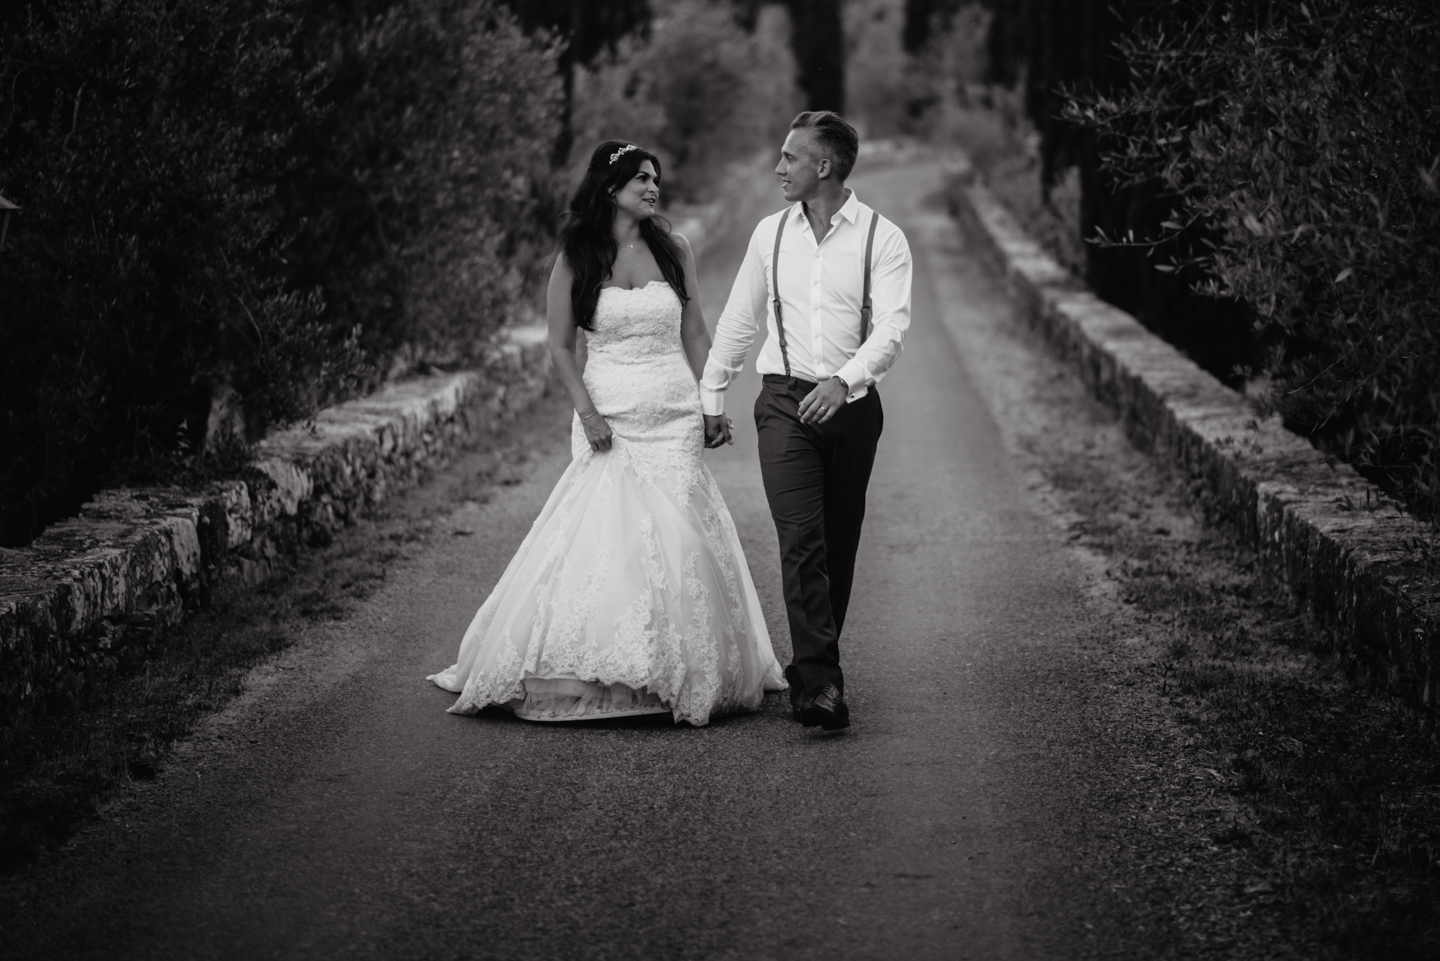 Wedding Photographer Siena Marco Vegni